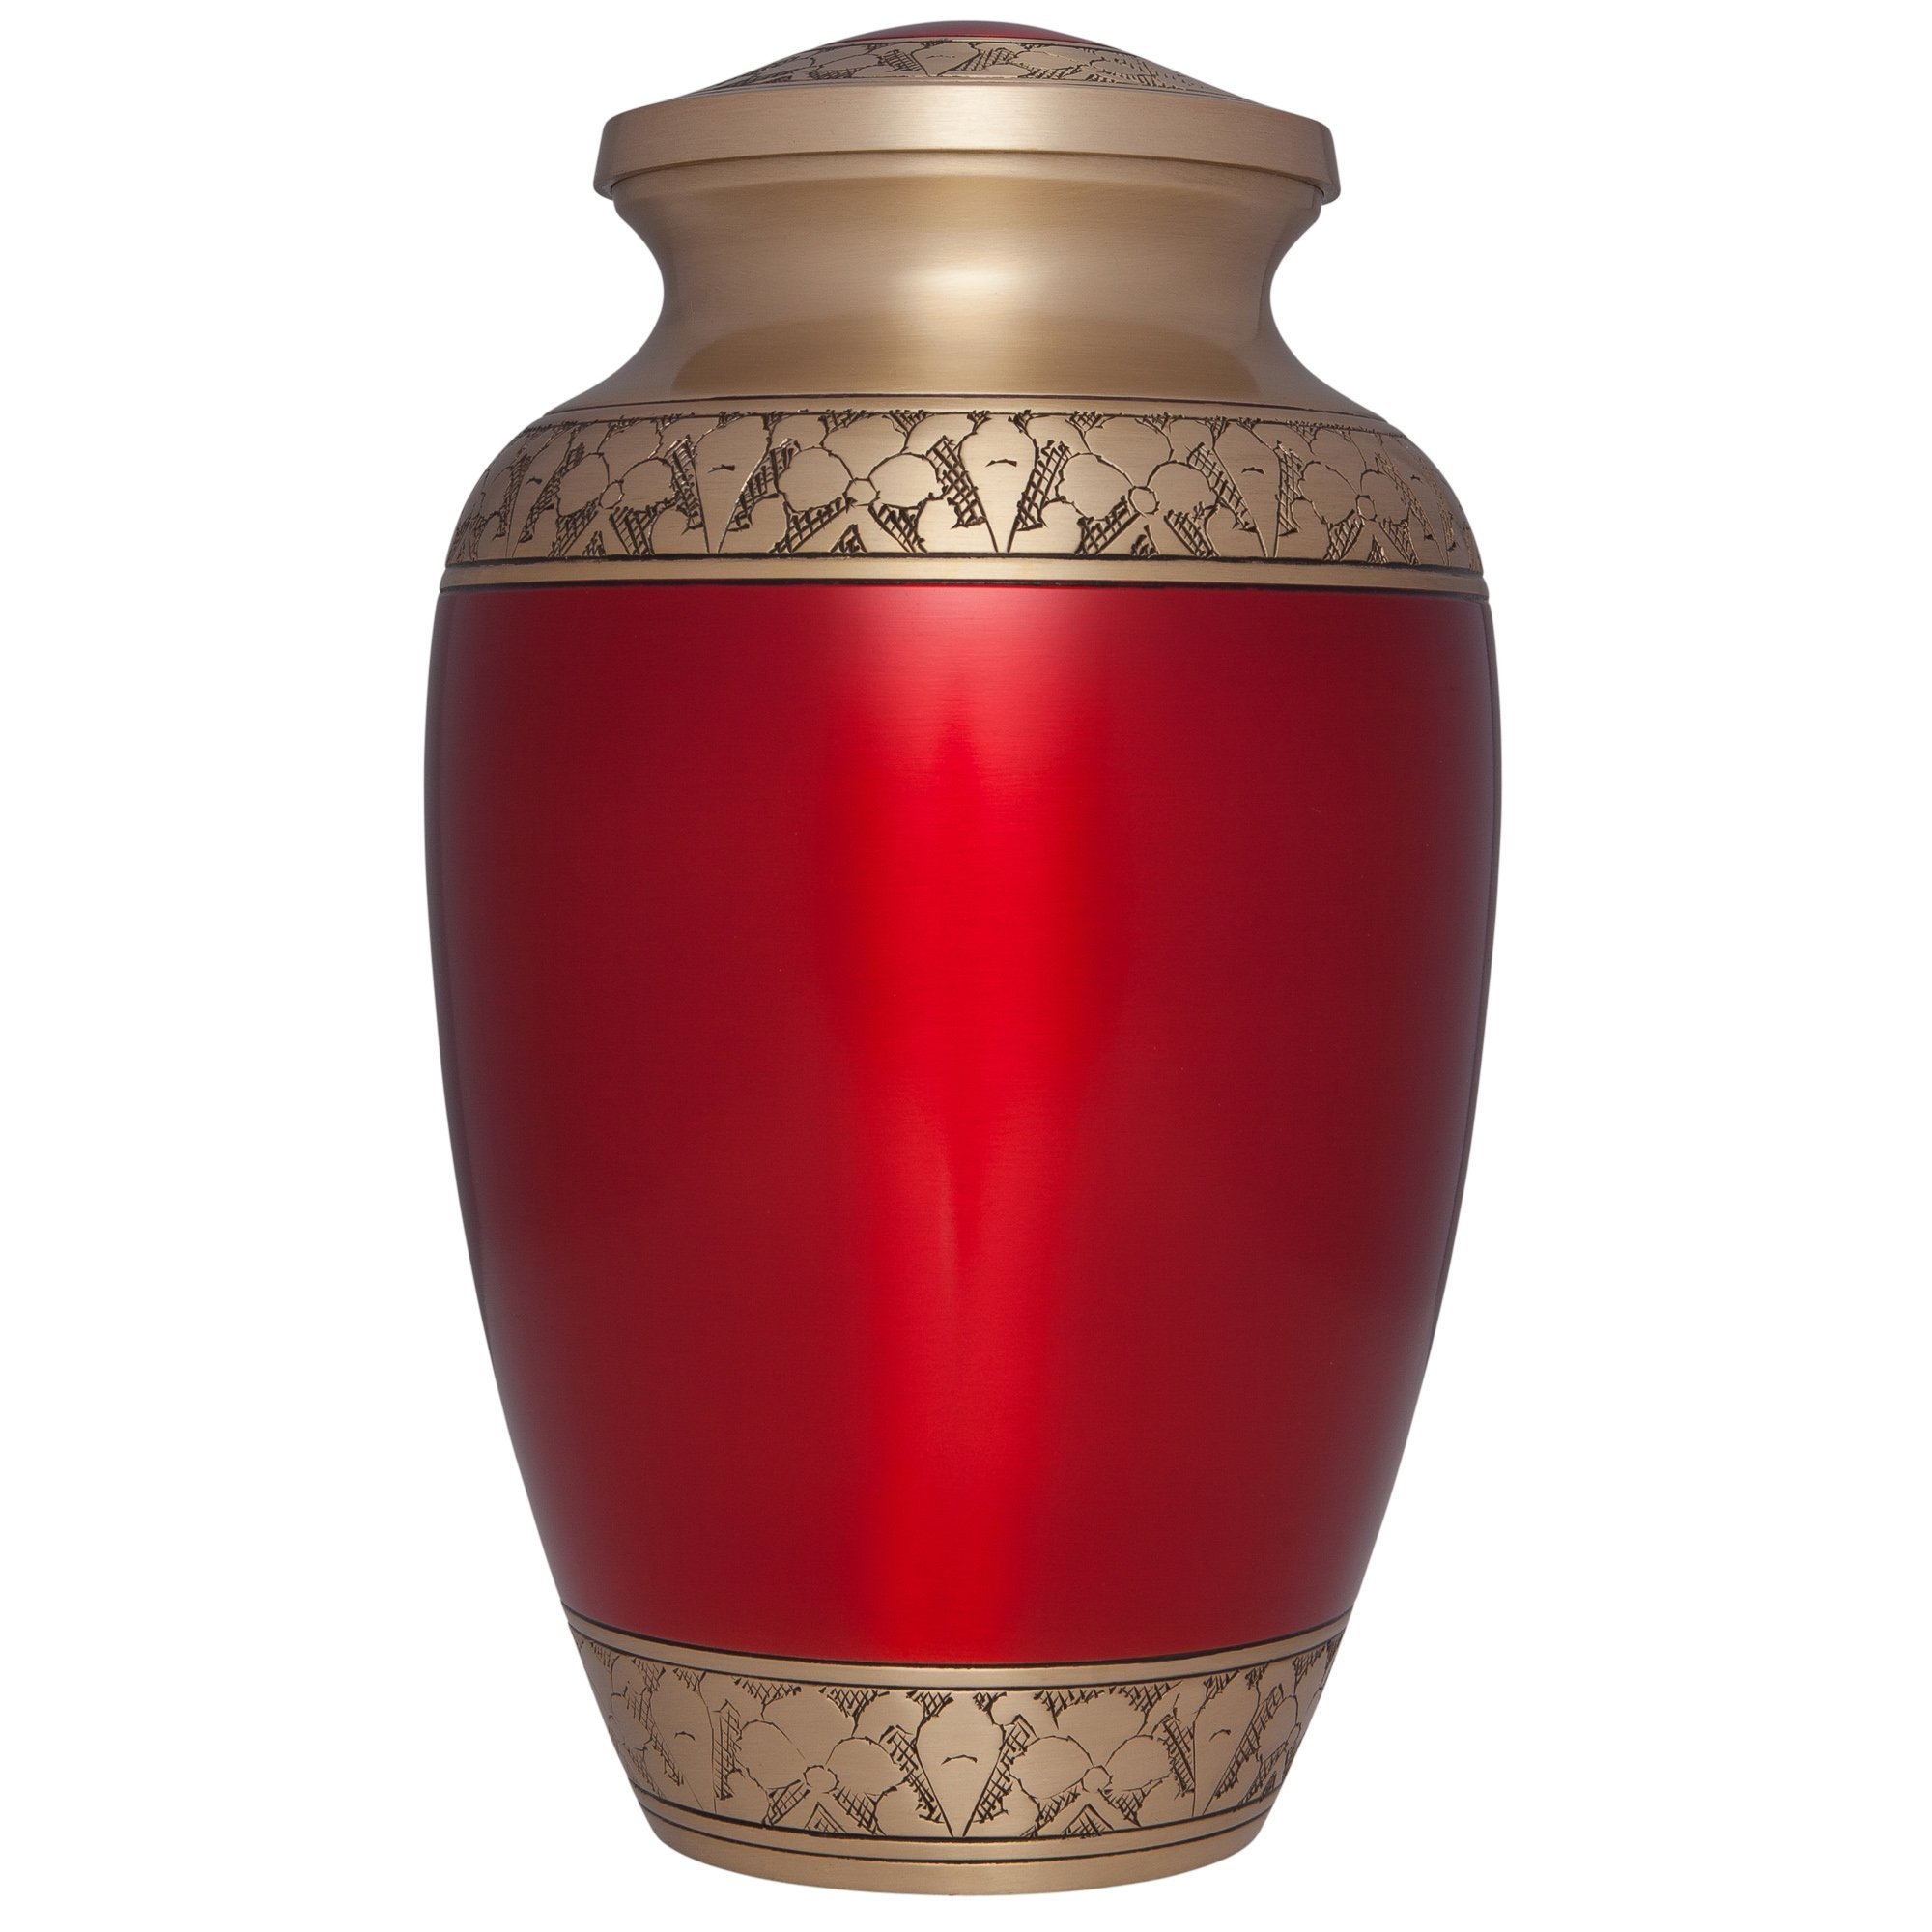 Red Funeral Urn by Liliane Memorials - Cremation Urn for Human Ashes - Hand Made in Brass -Suitable for Cemetery Burial or Niche- Large Size fits remains of Adults up to 200 lbs- Tranquility Red Model